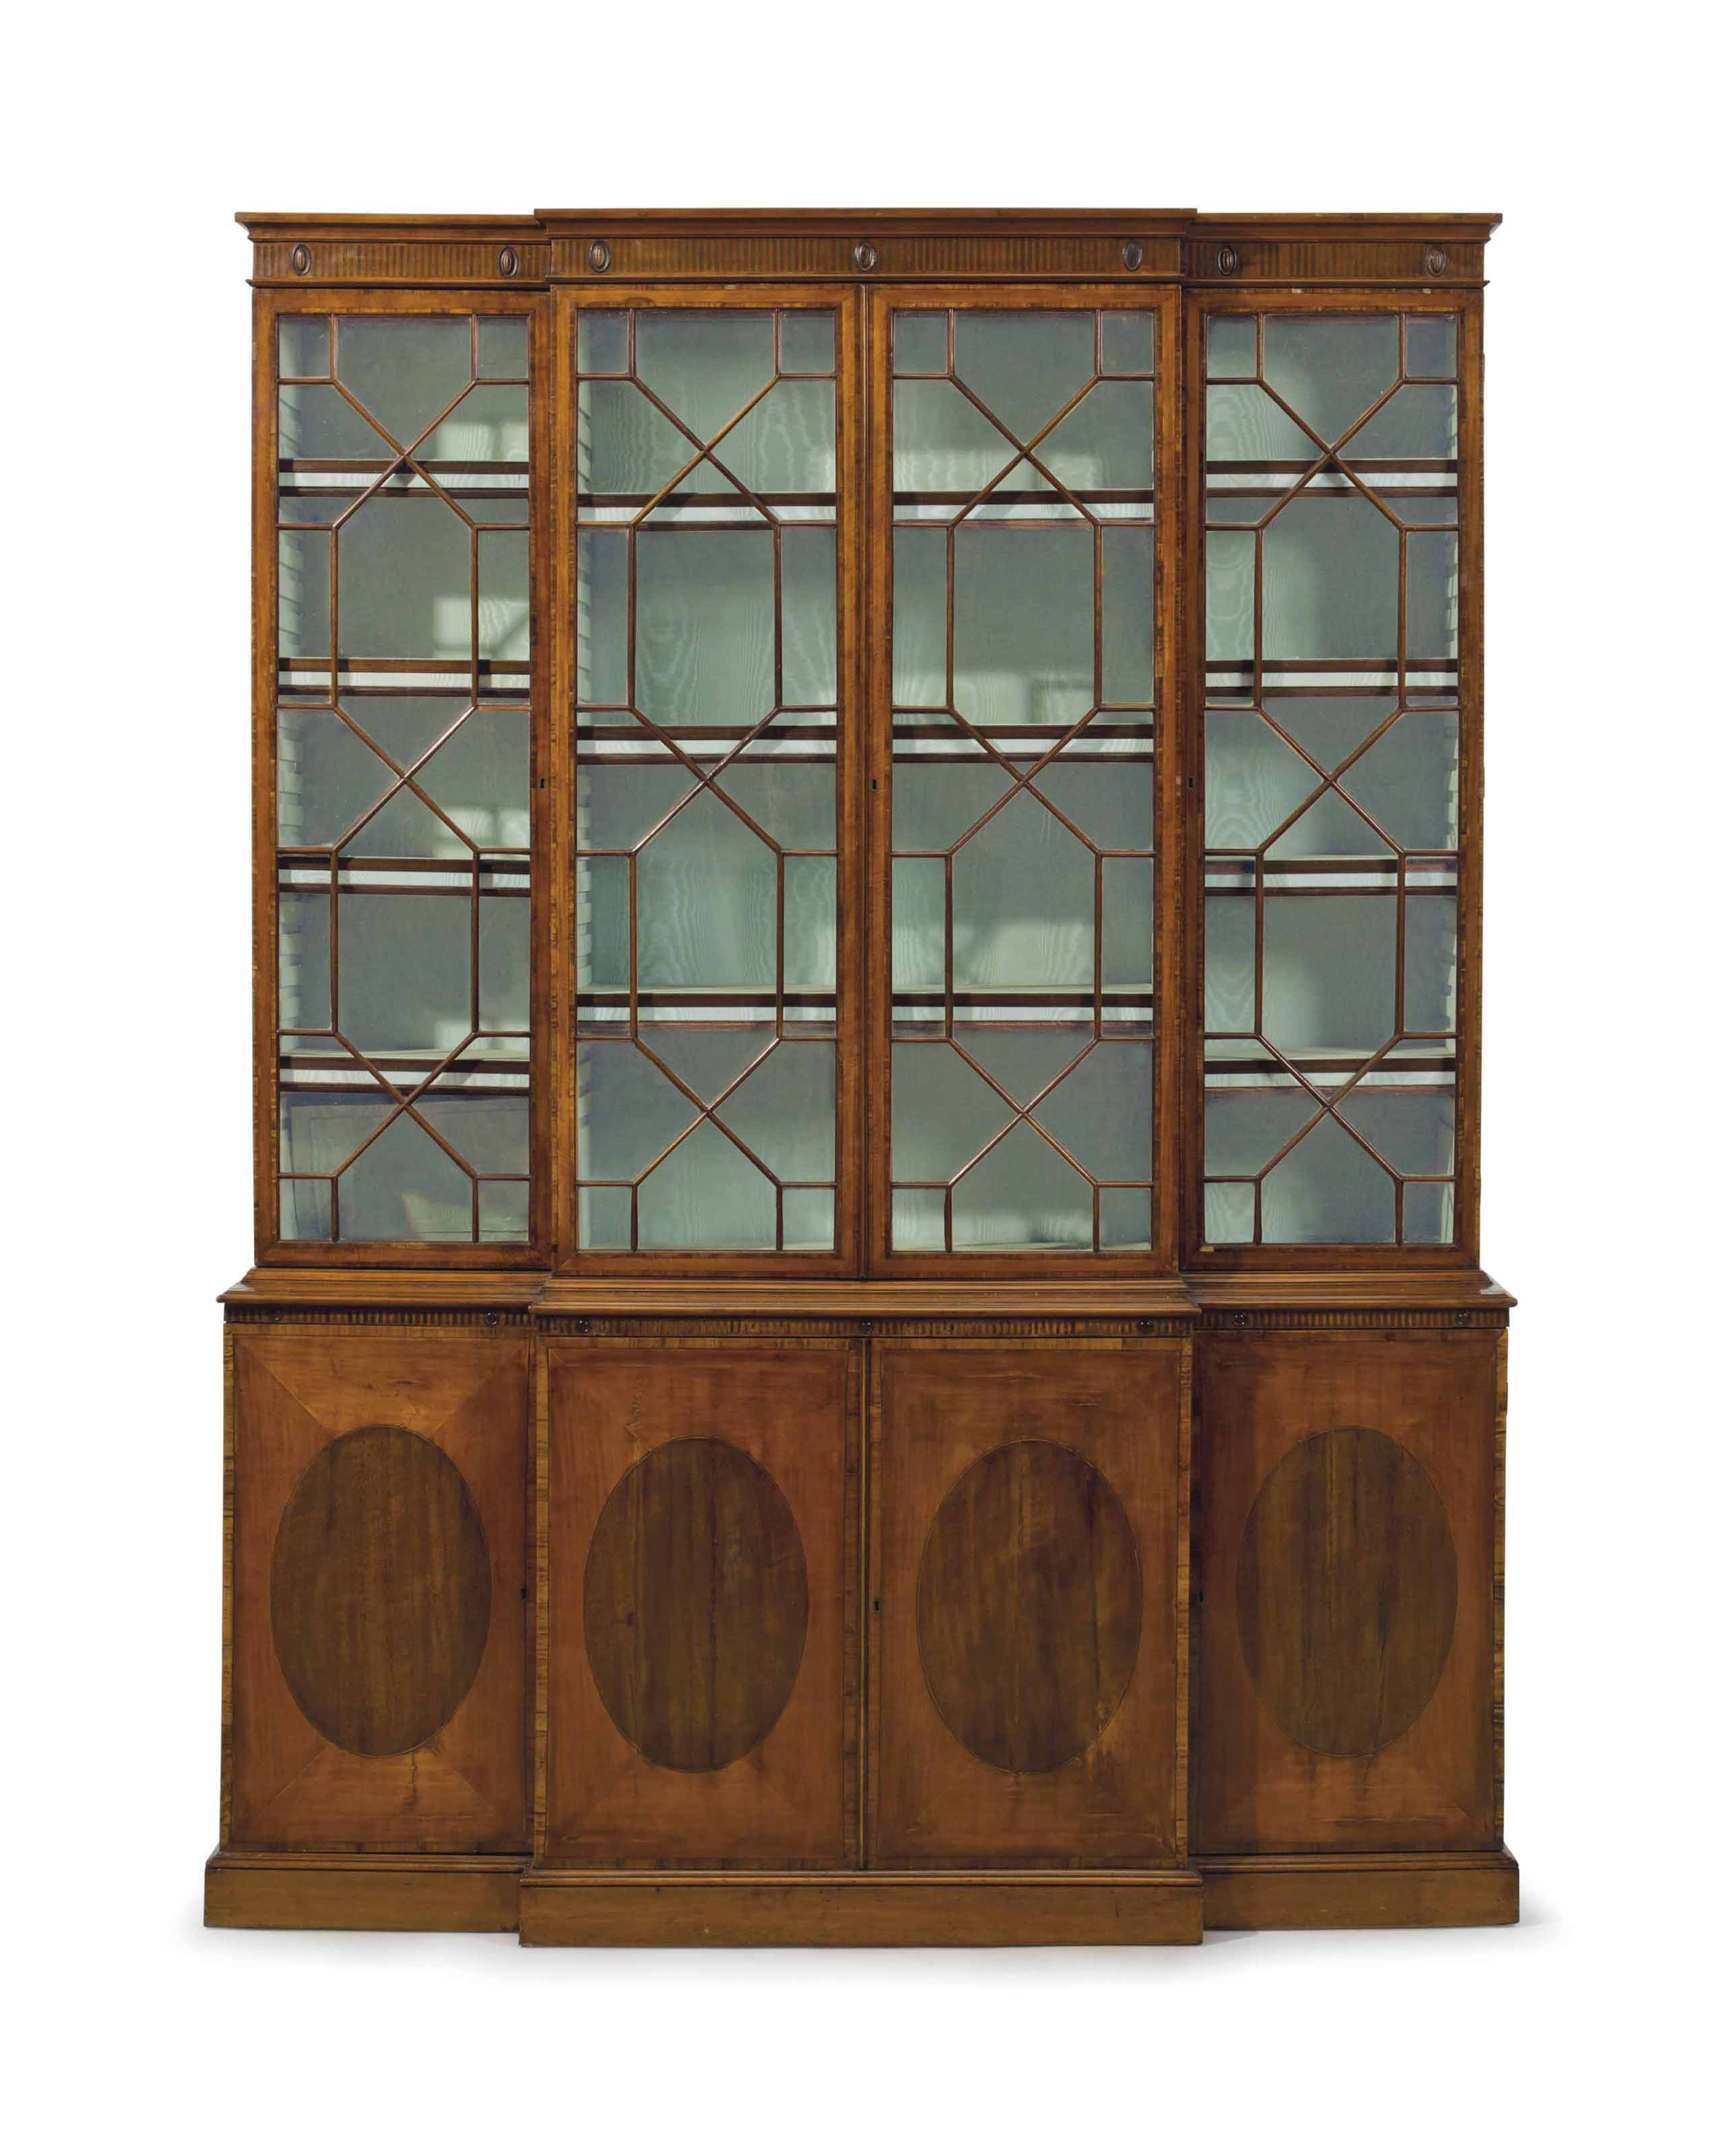 A GEORGE III SATINWOOD, PADOUK AND TULIPWOOD BREAKFRONT BOOKCASE